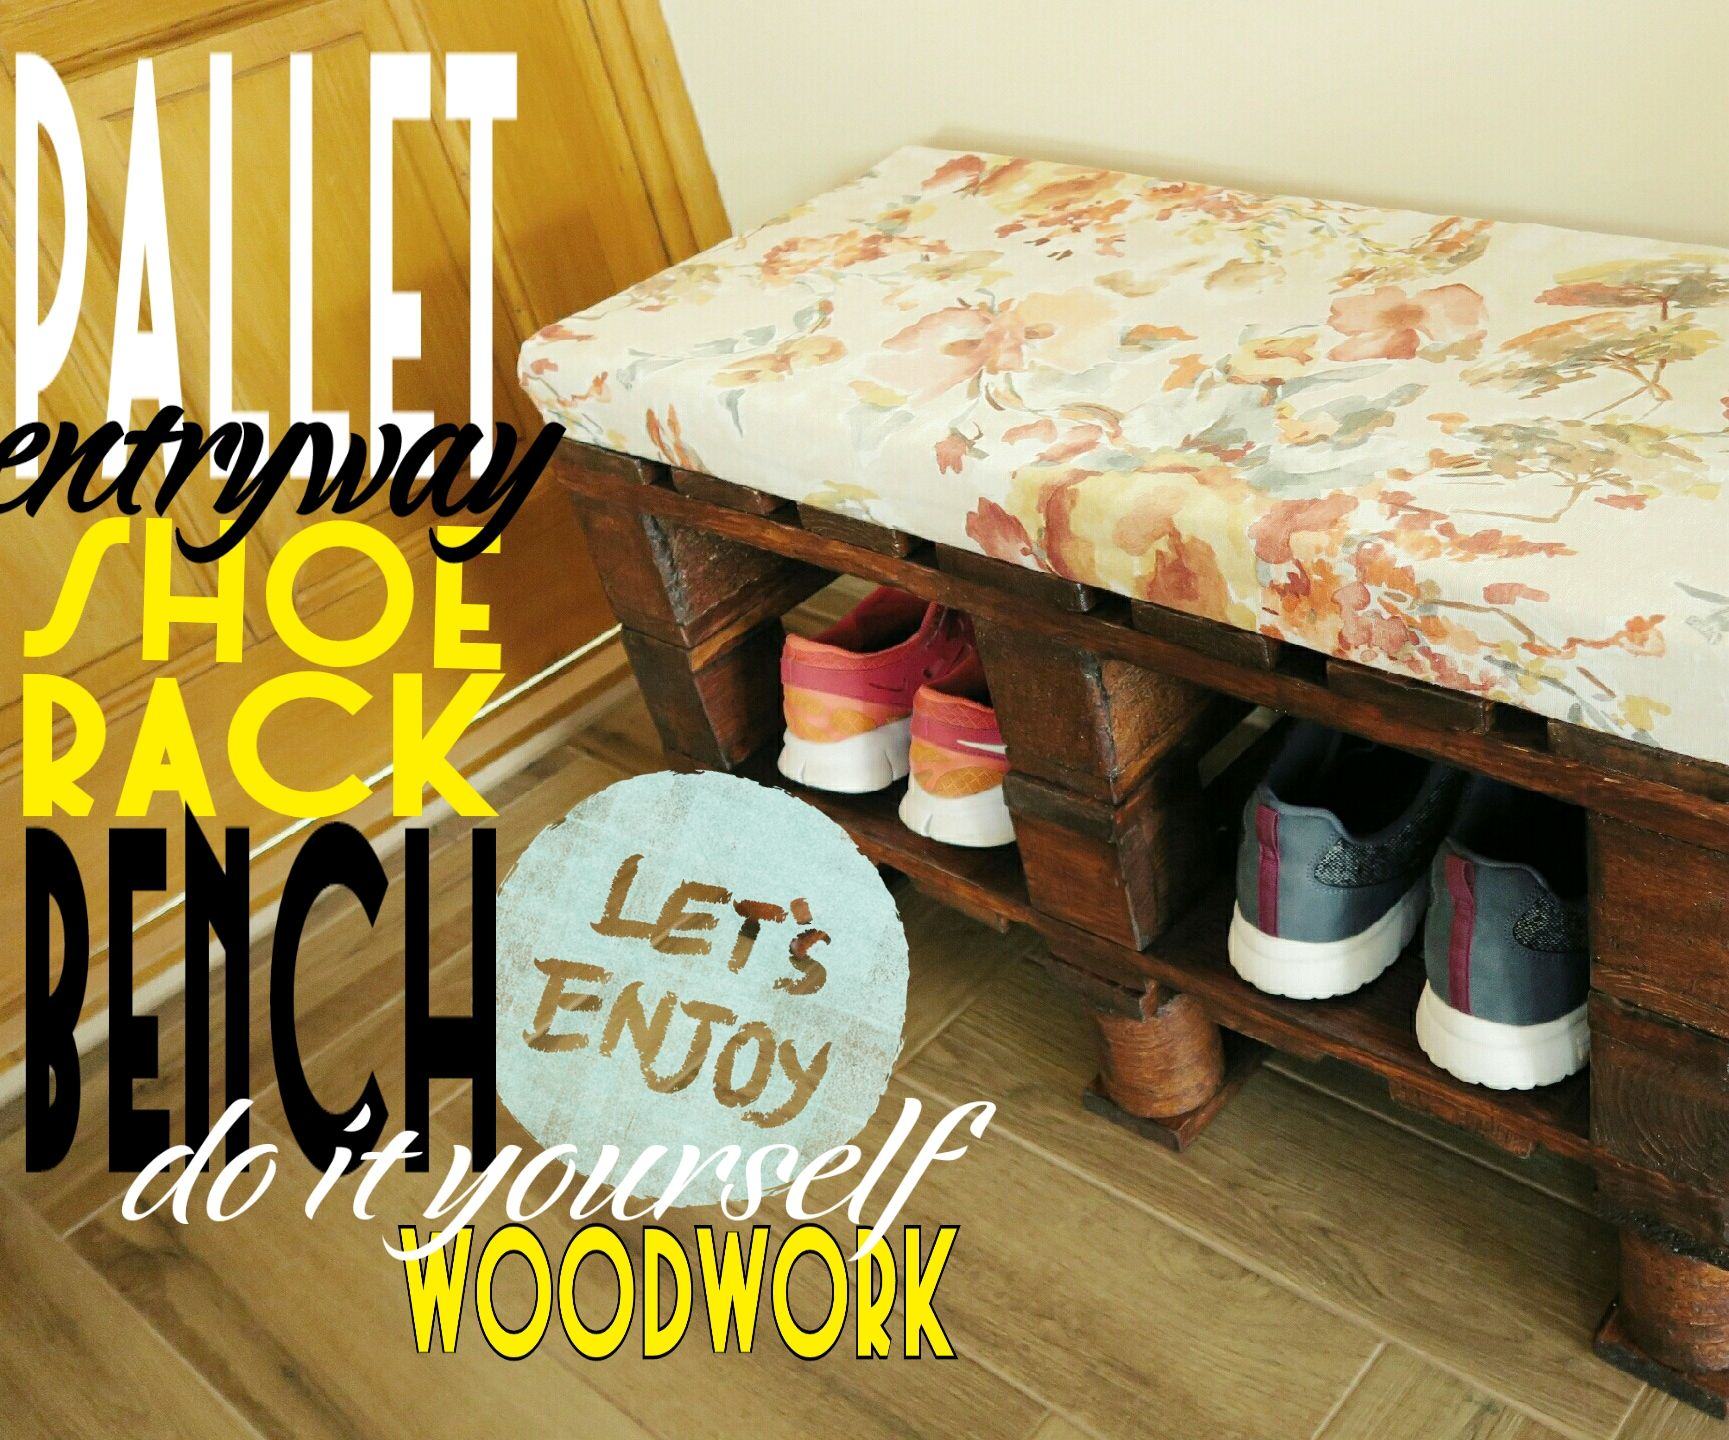 How you can do a pallet bench-shoerack yourself